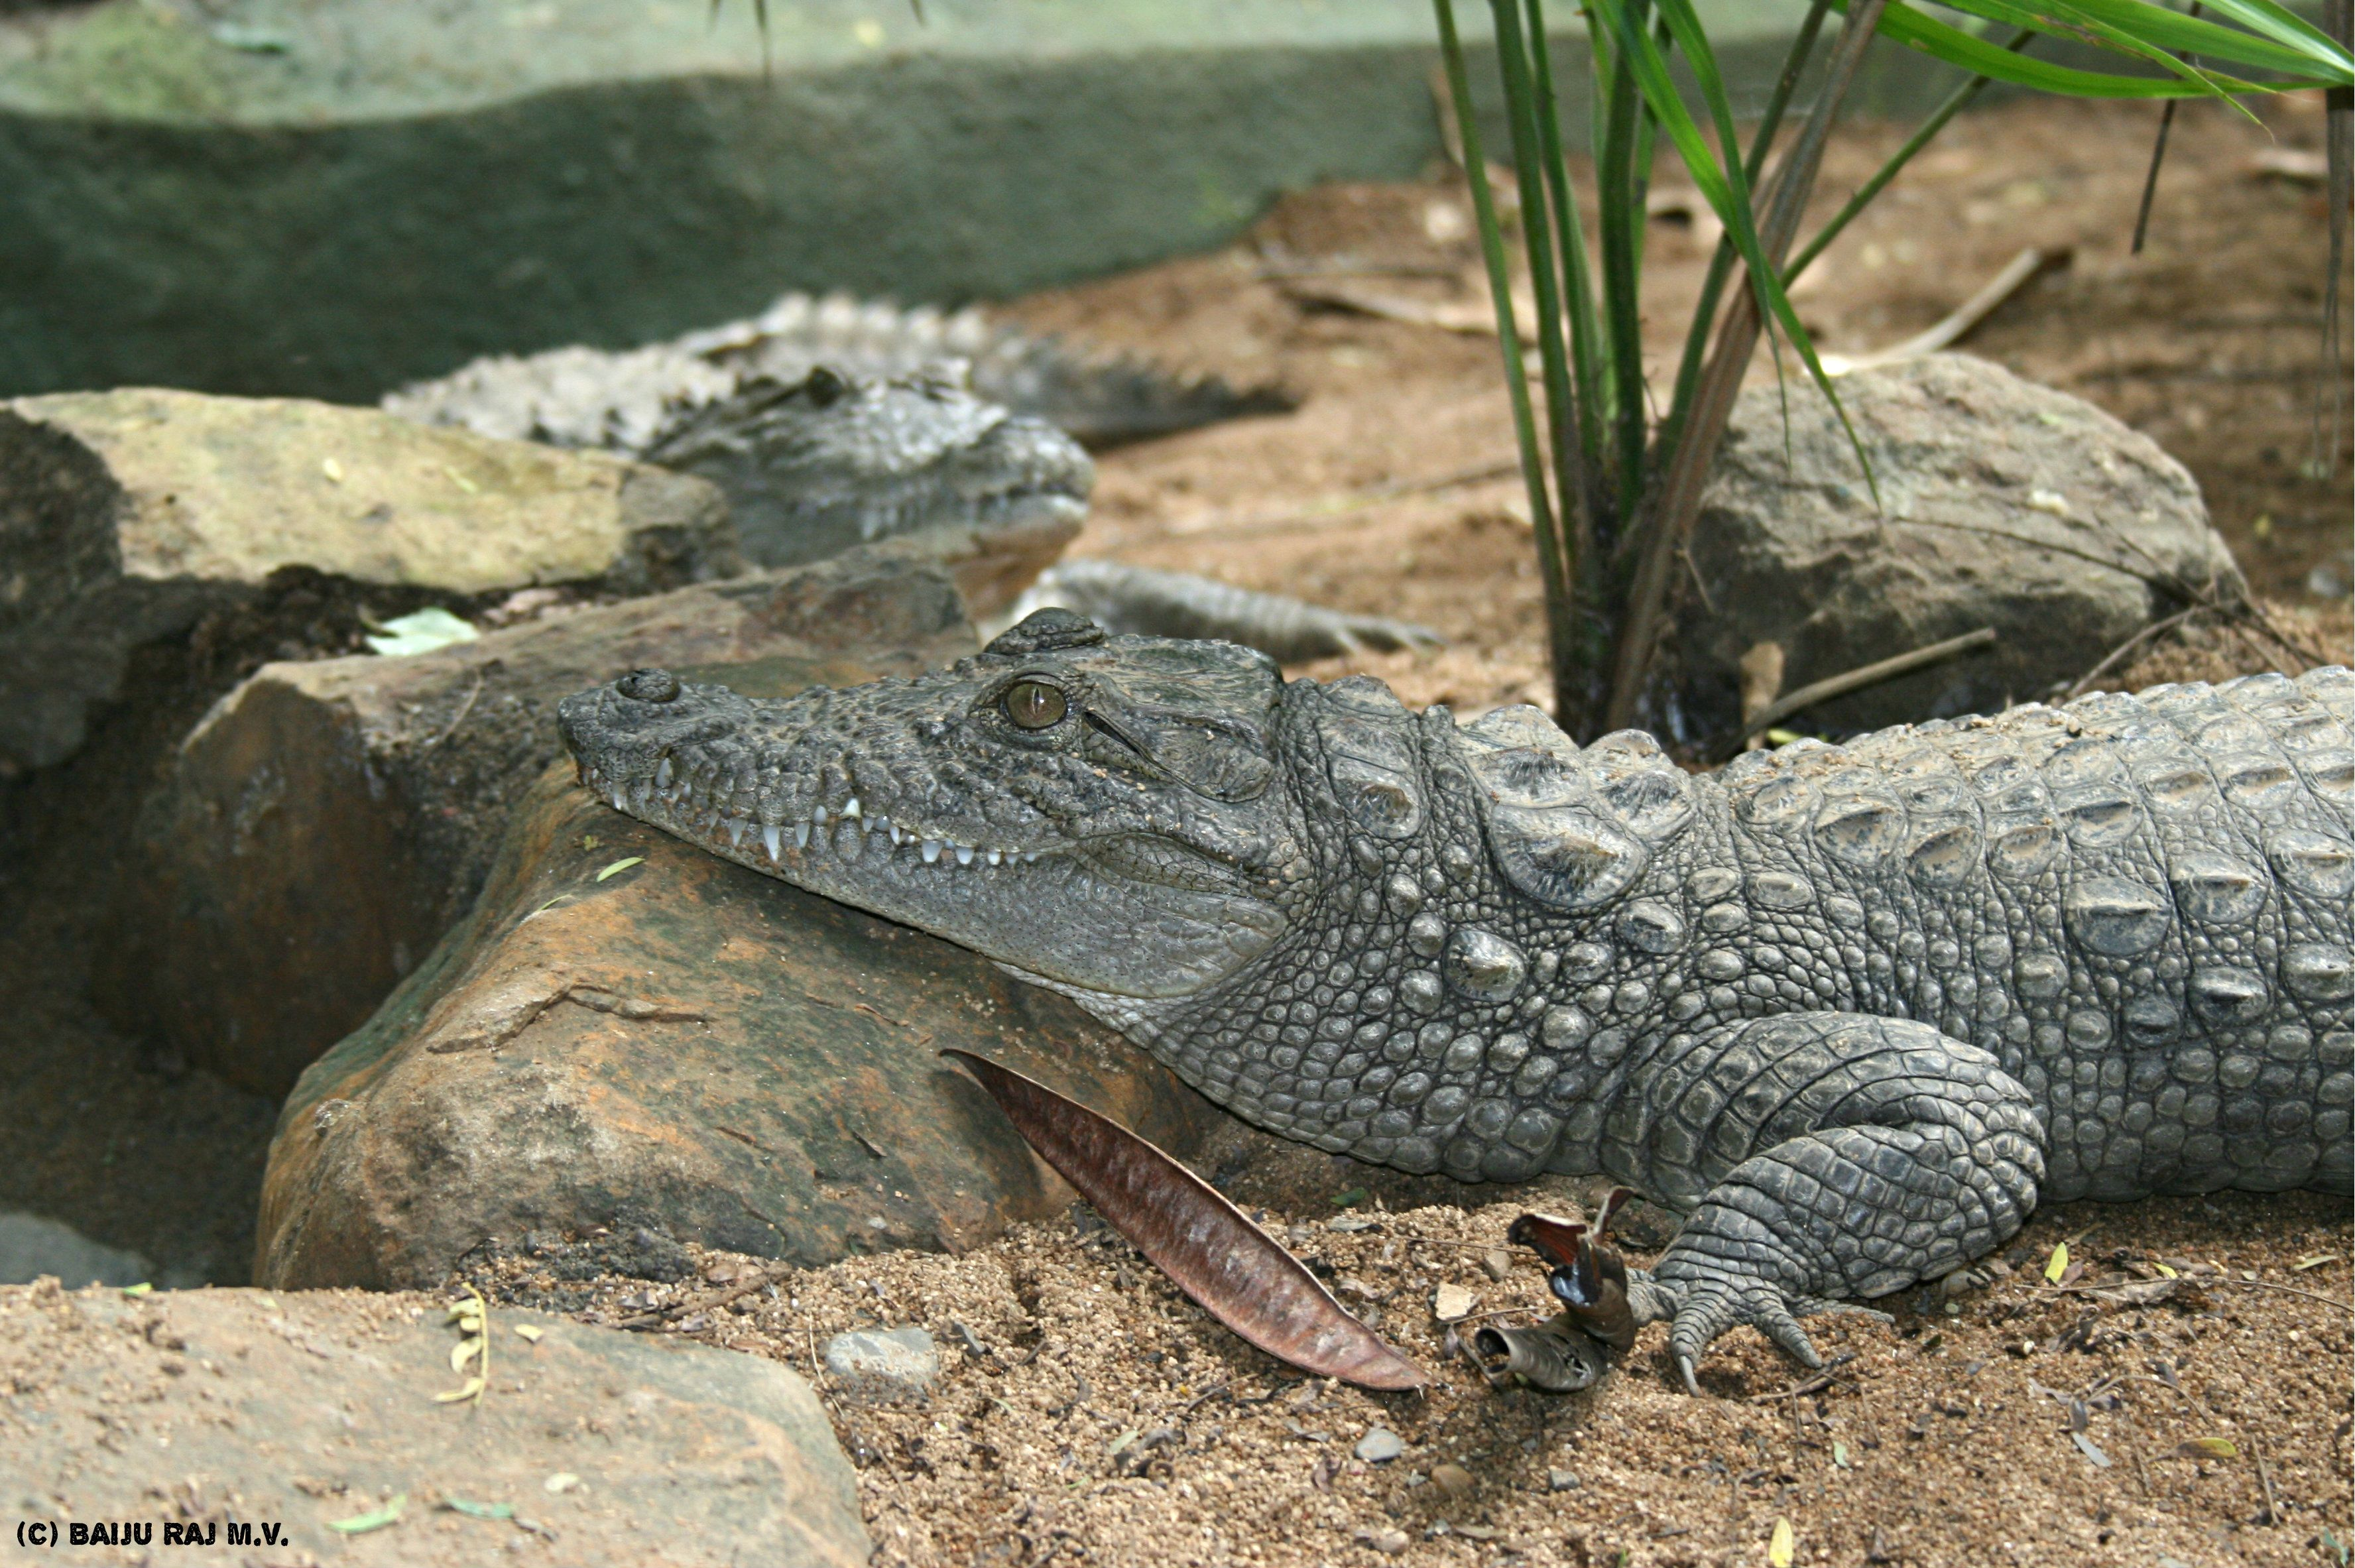 Friday Facts about the Mugger Crocodile! 1. The Mugger